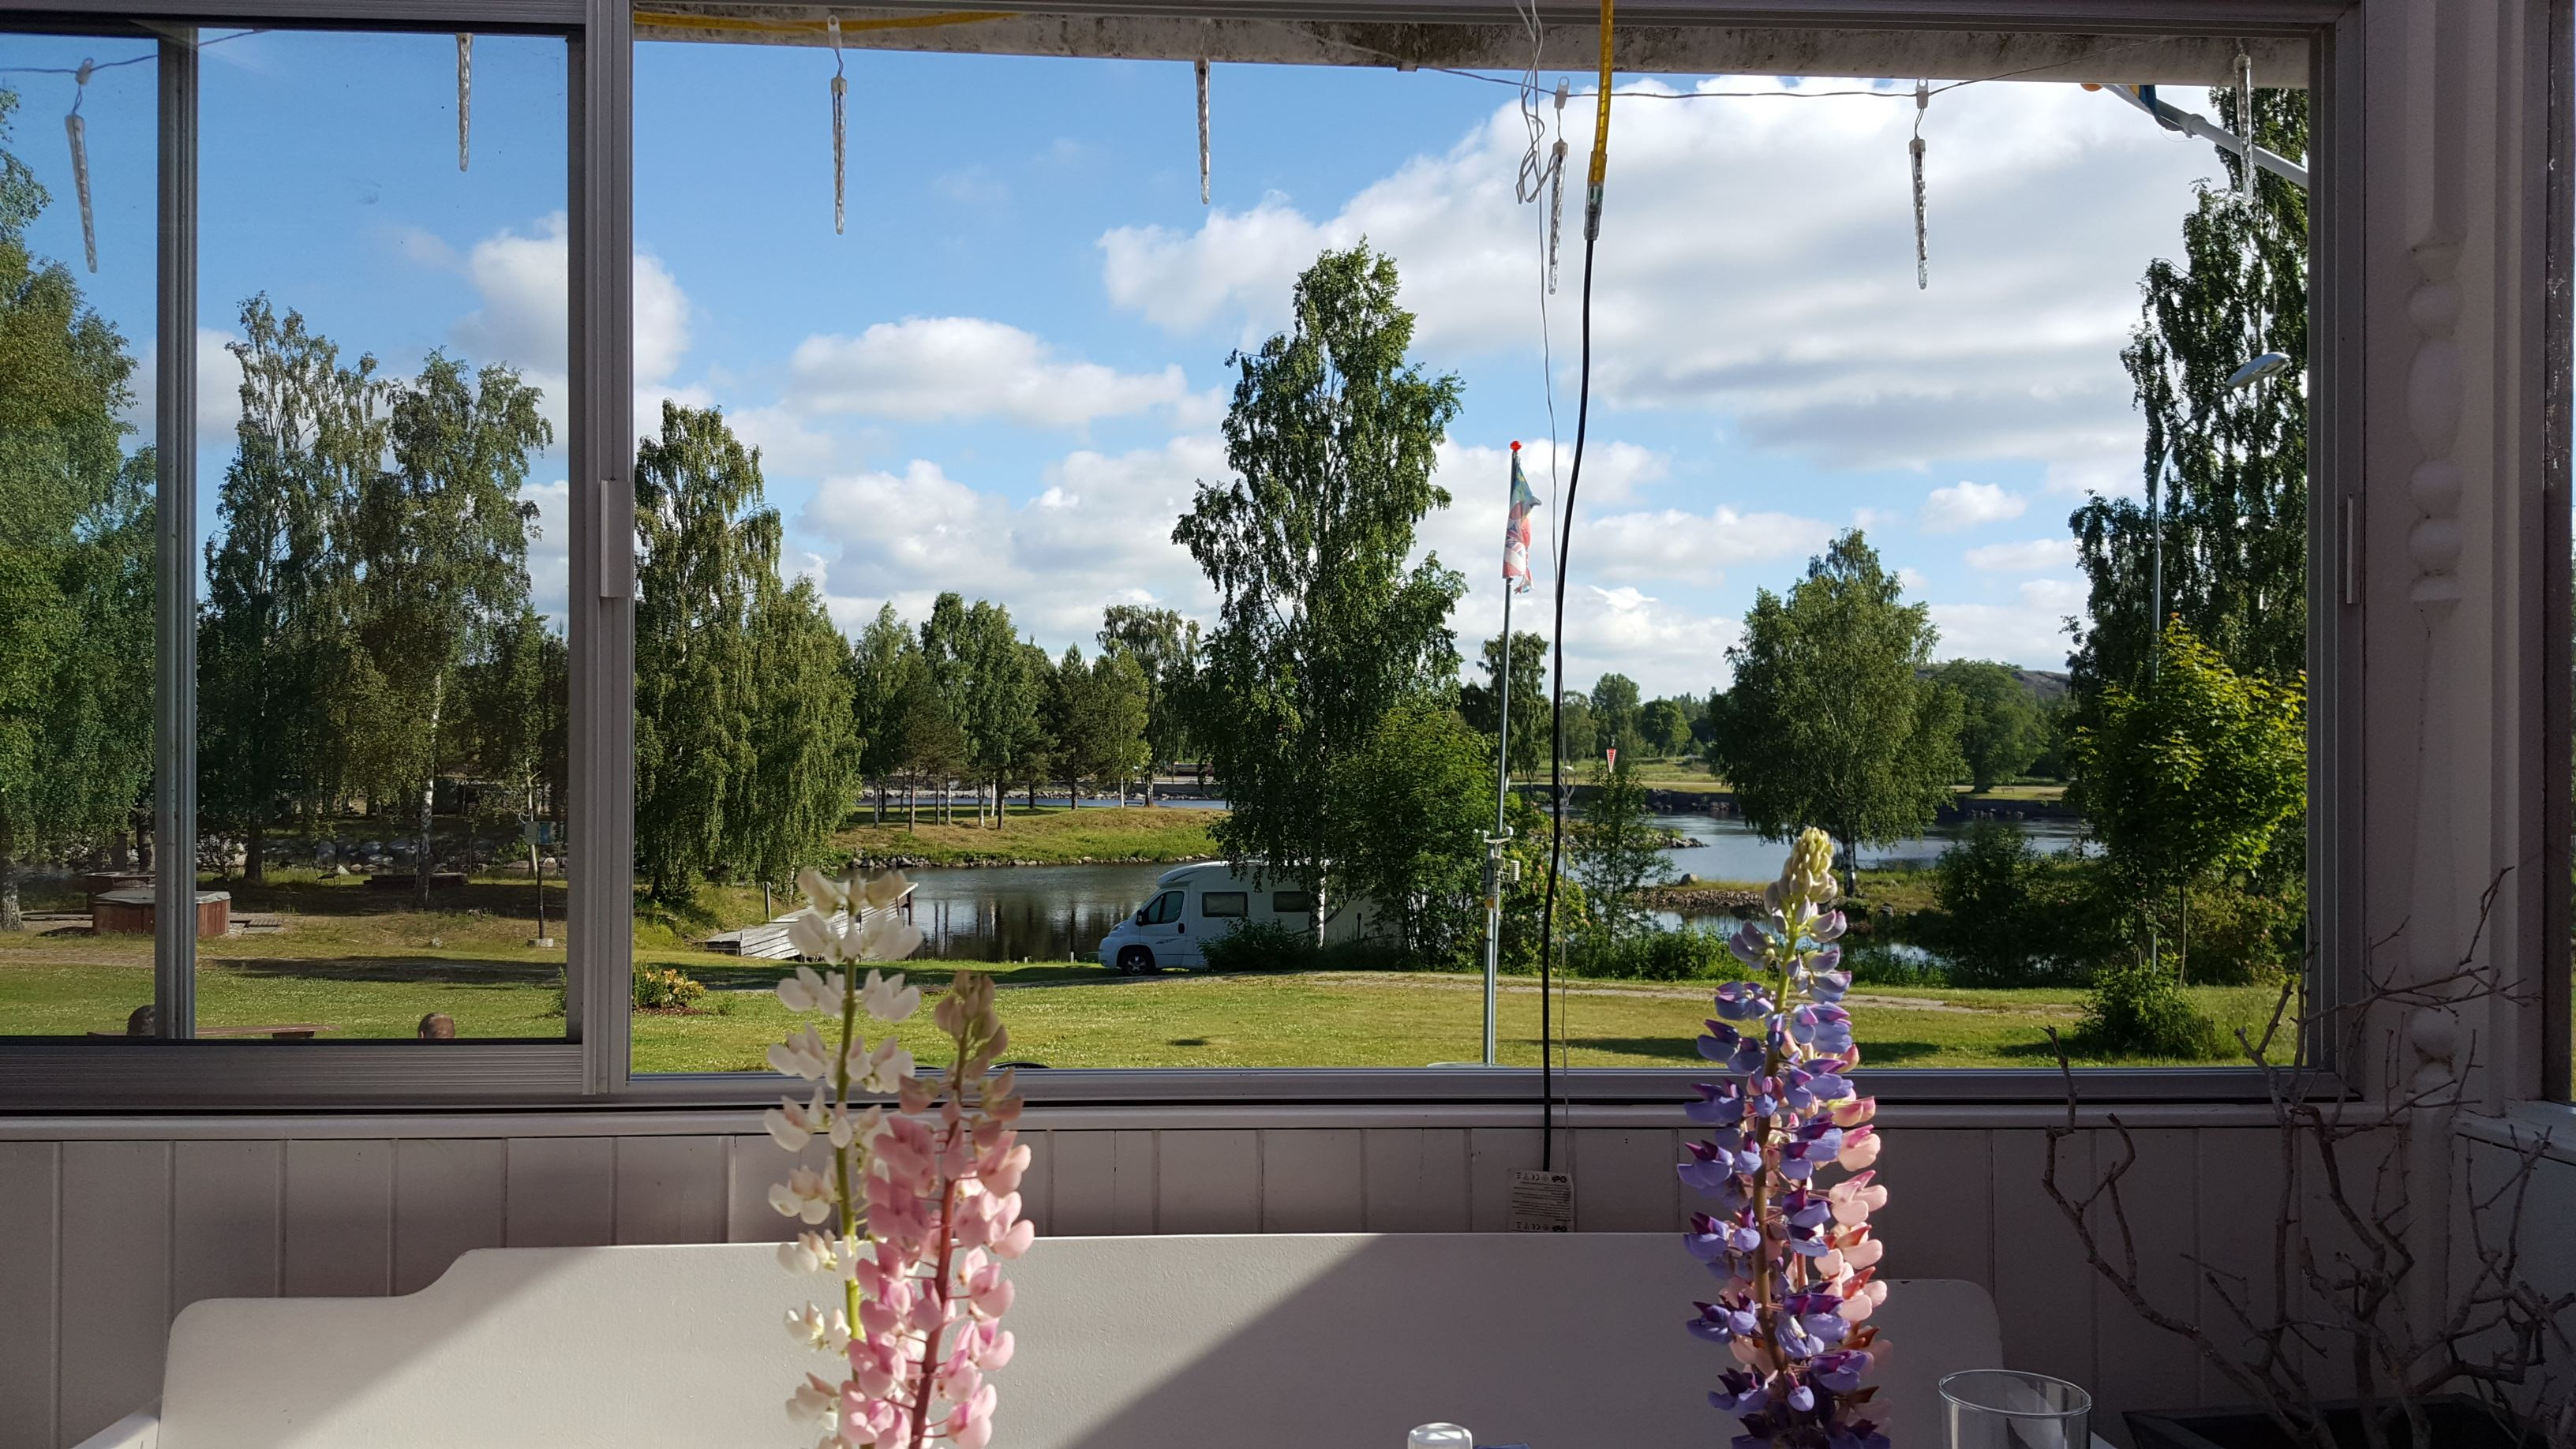 Restaurant by Ljusnefors Camping Ground